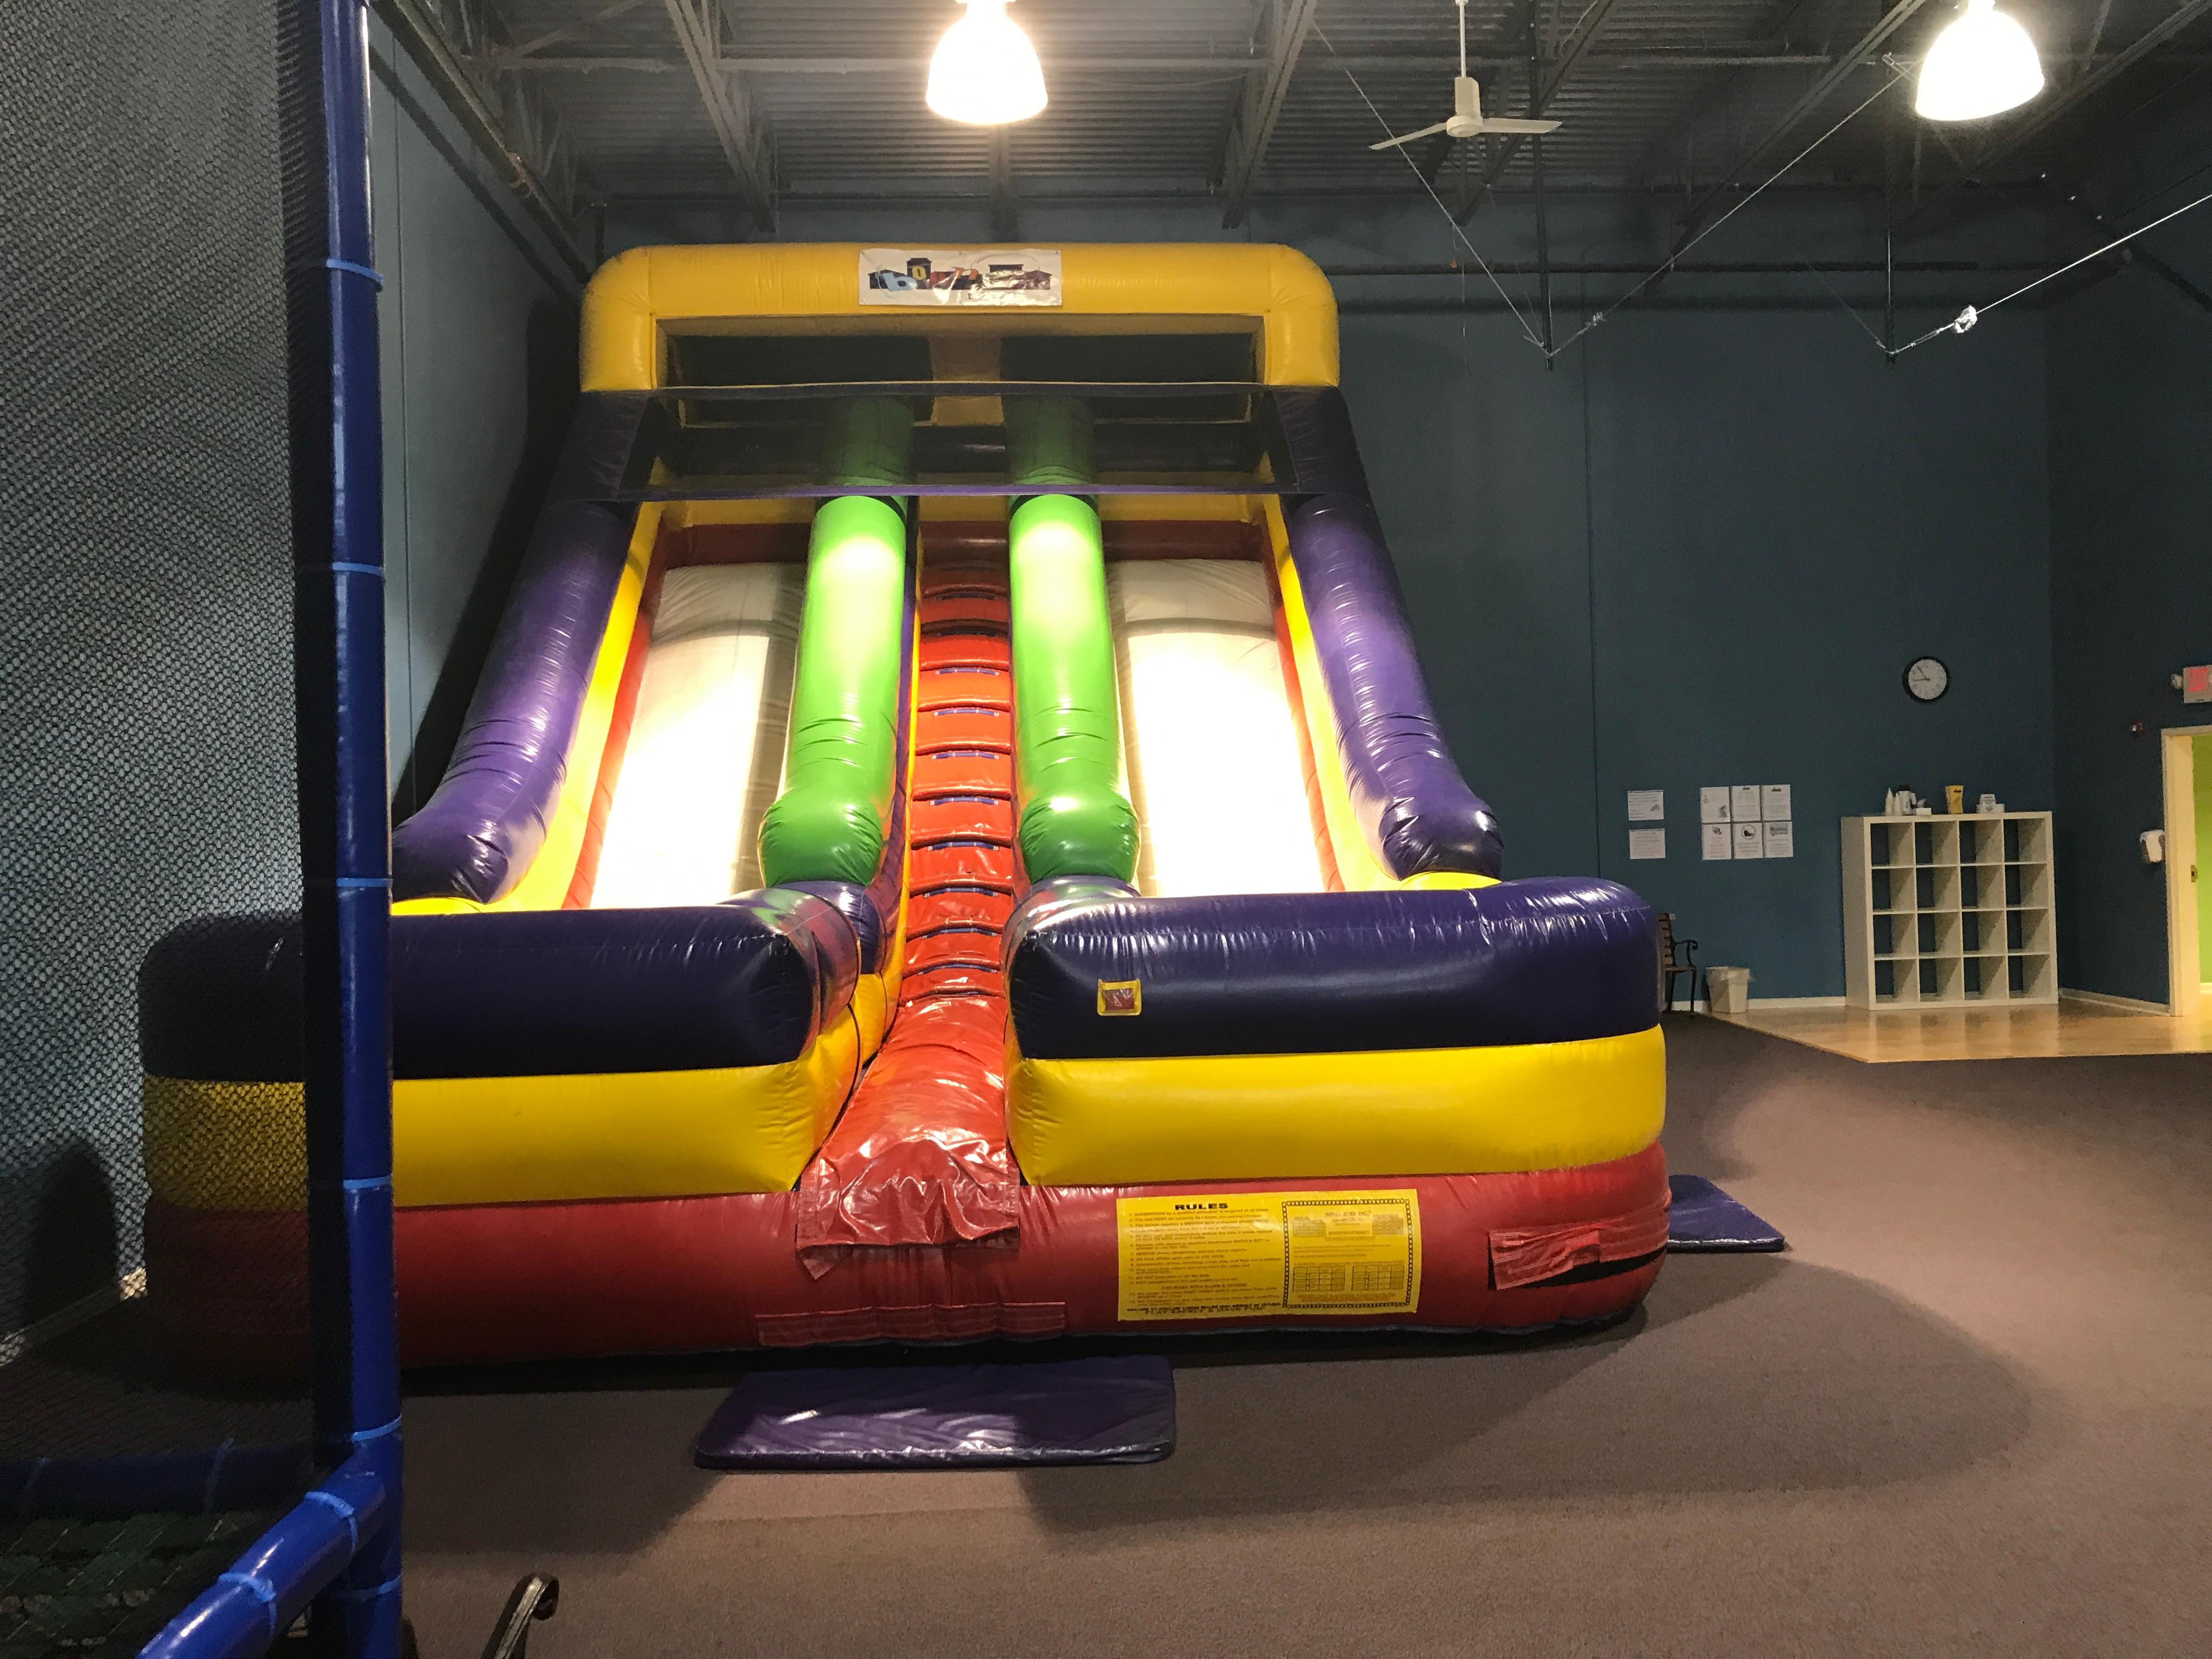 Bouncetown image 3